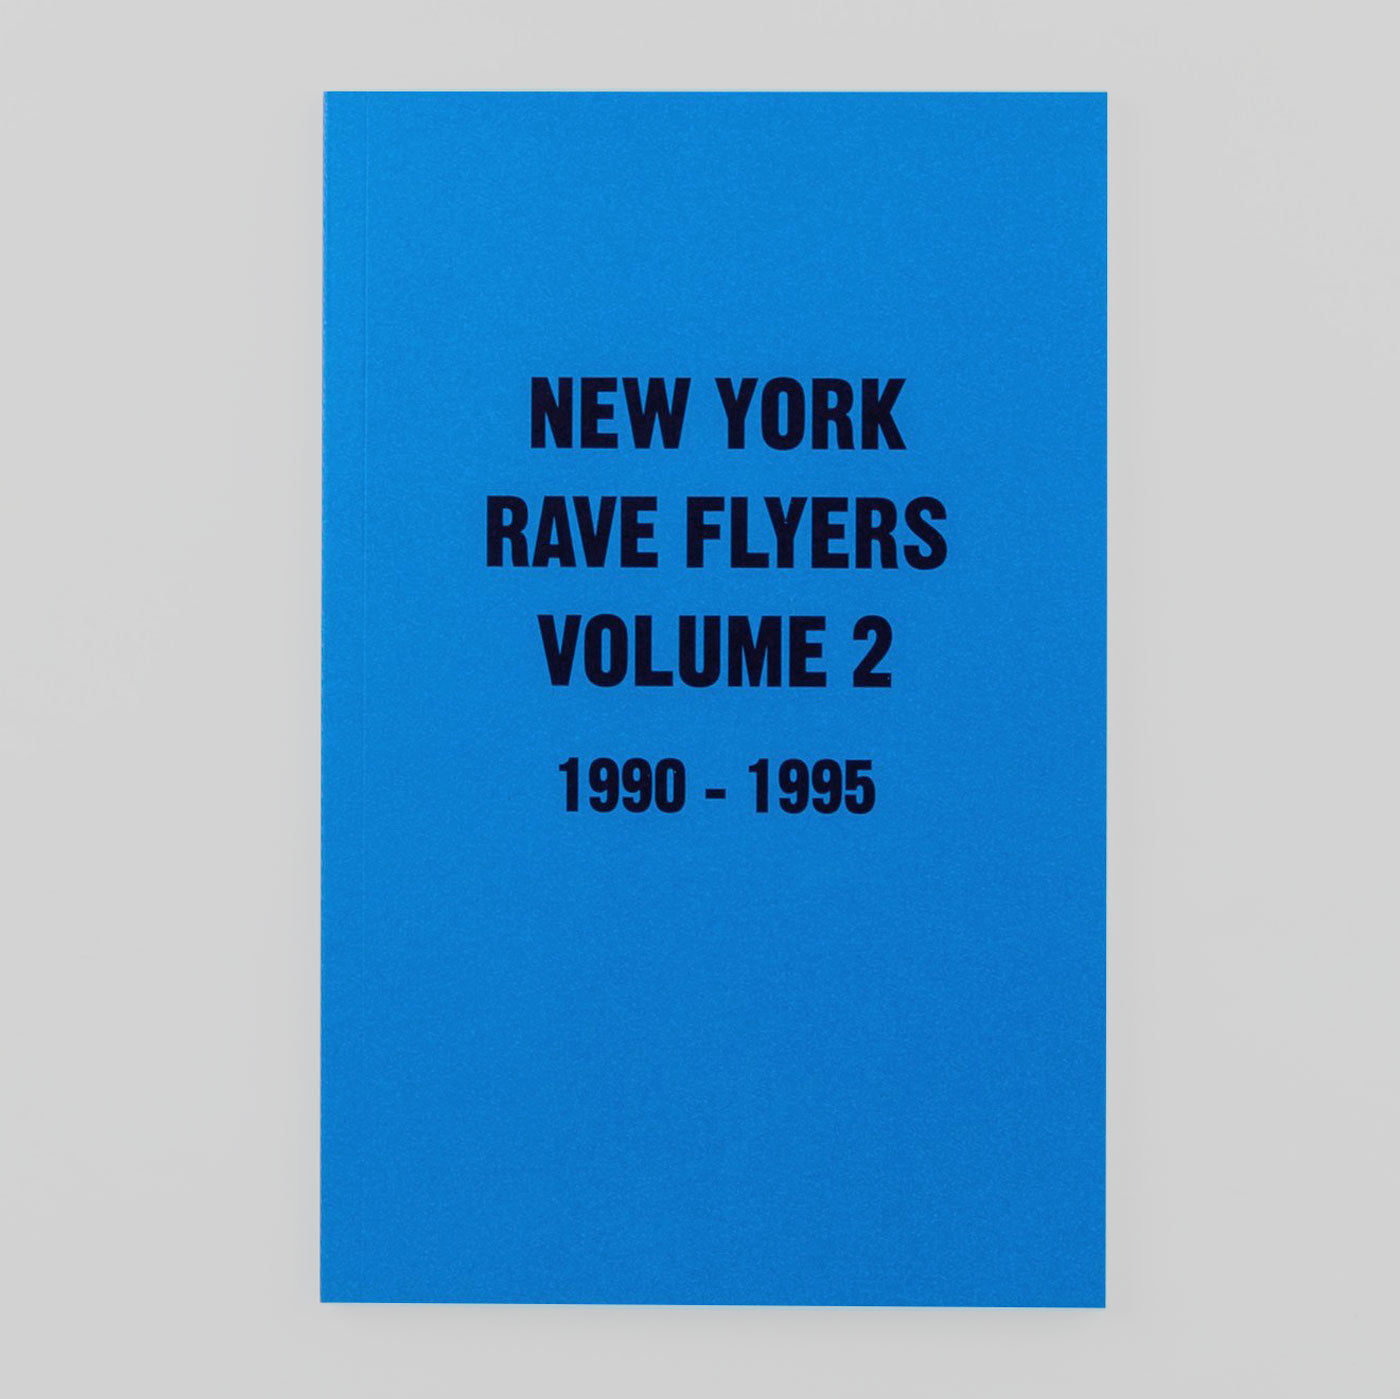 New York Rave Flyers Vol. 2 | 1990-1995 | Colours May Vary